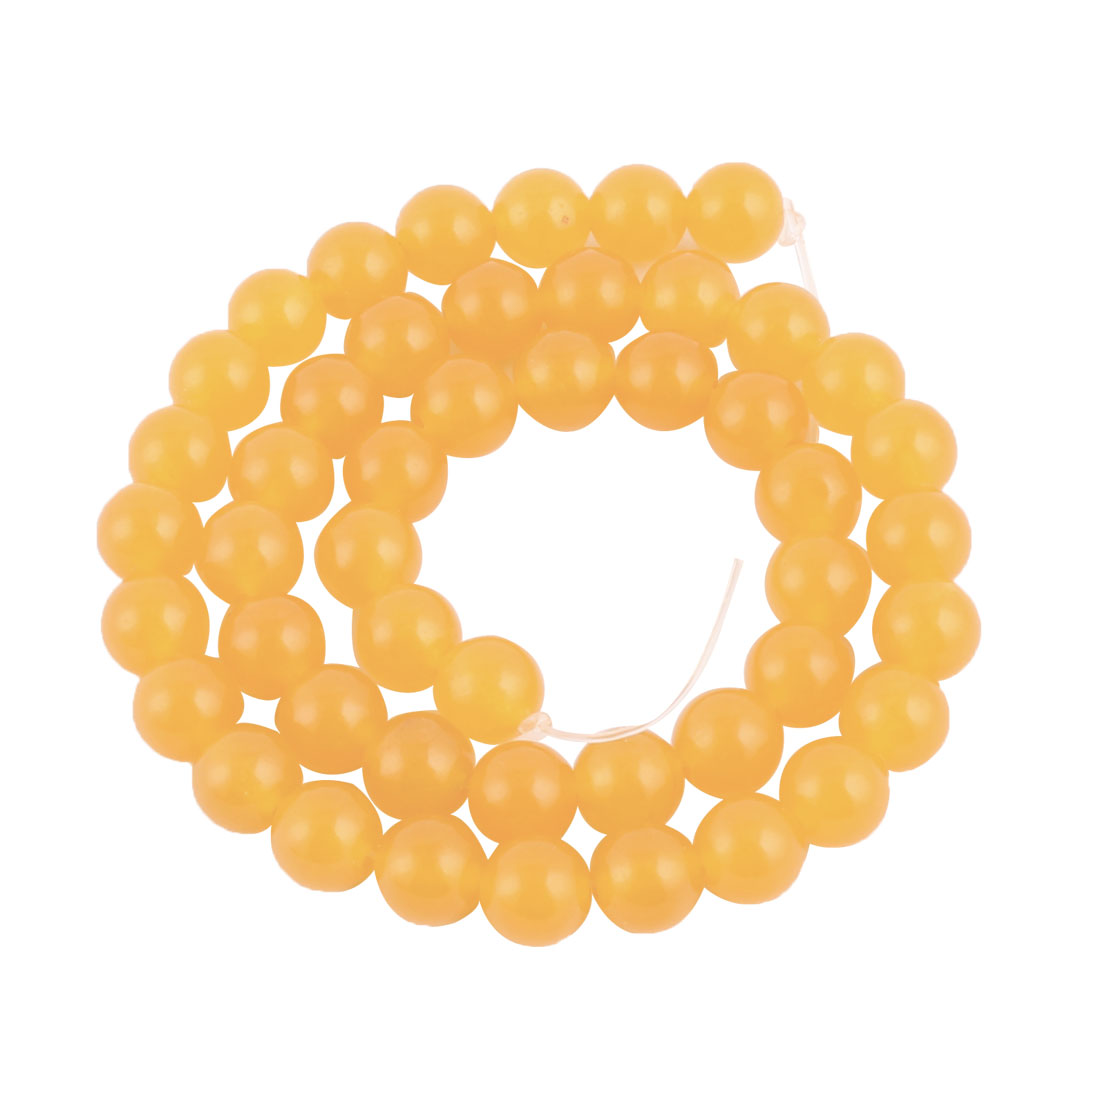 Woman Glass Oval Shape Bead String Decorative Necklace Yellow 8mm Dia